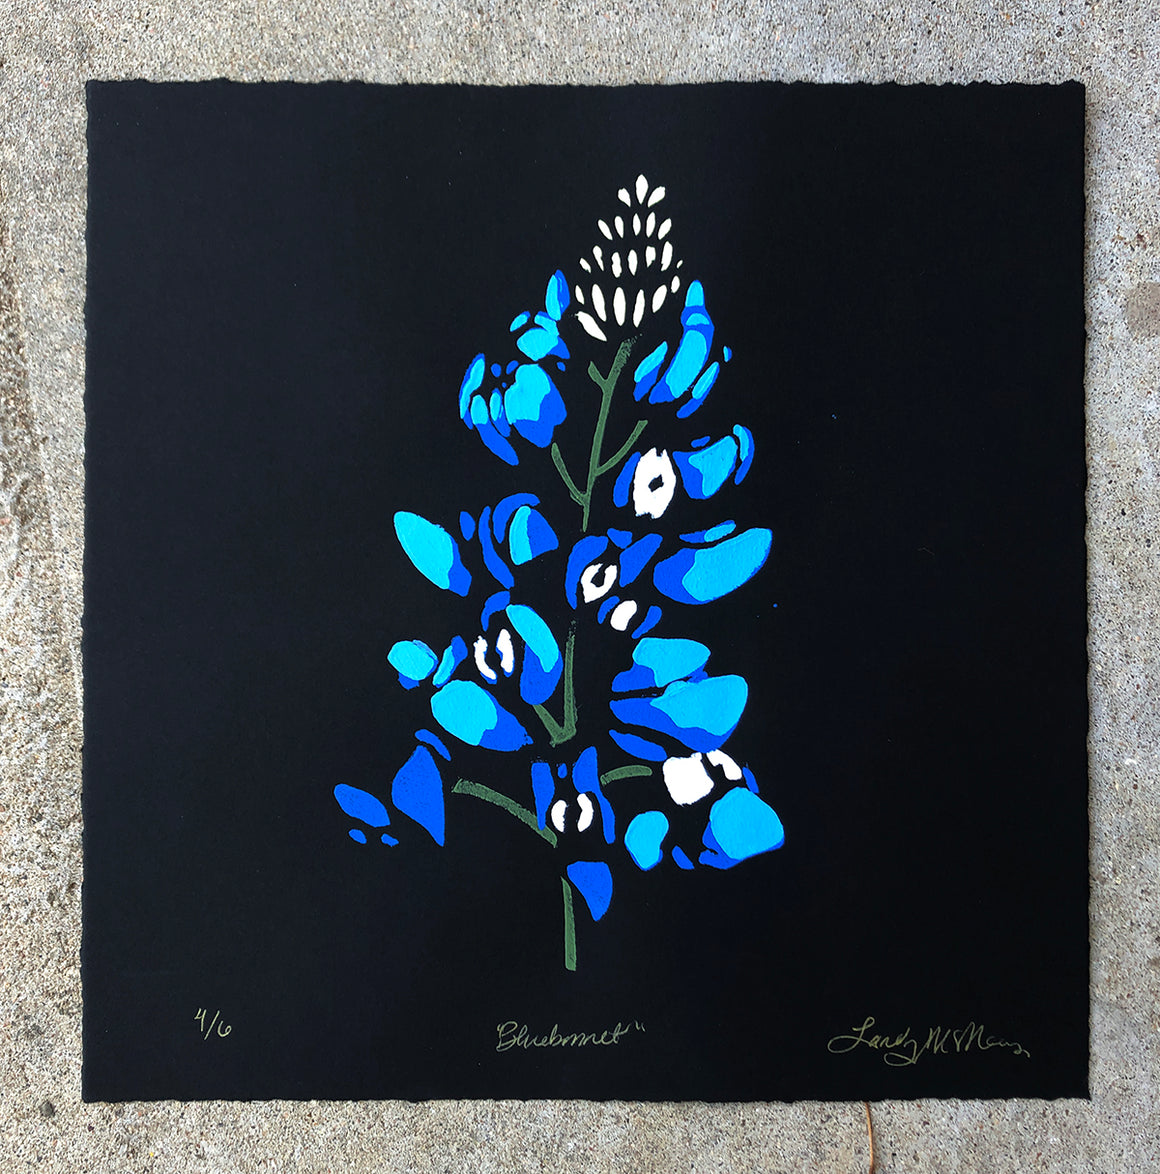 Bluebonnet (on black) - Landry McMeans - 15x15""